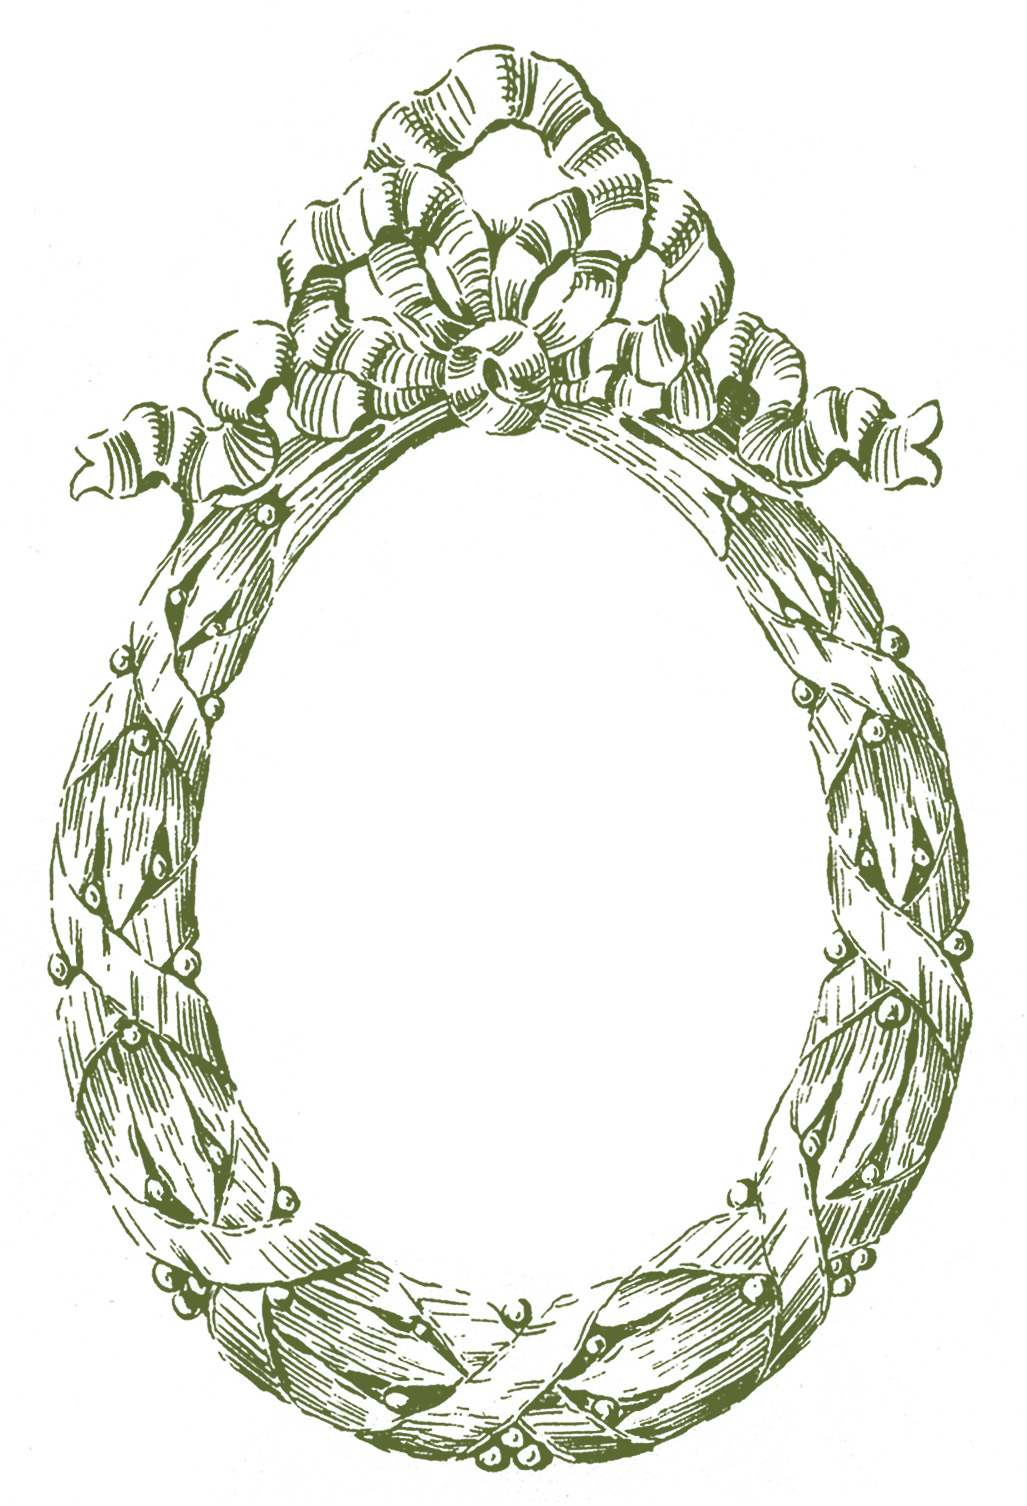 Oval Laurel Wreath Frame Images